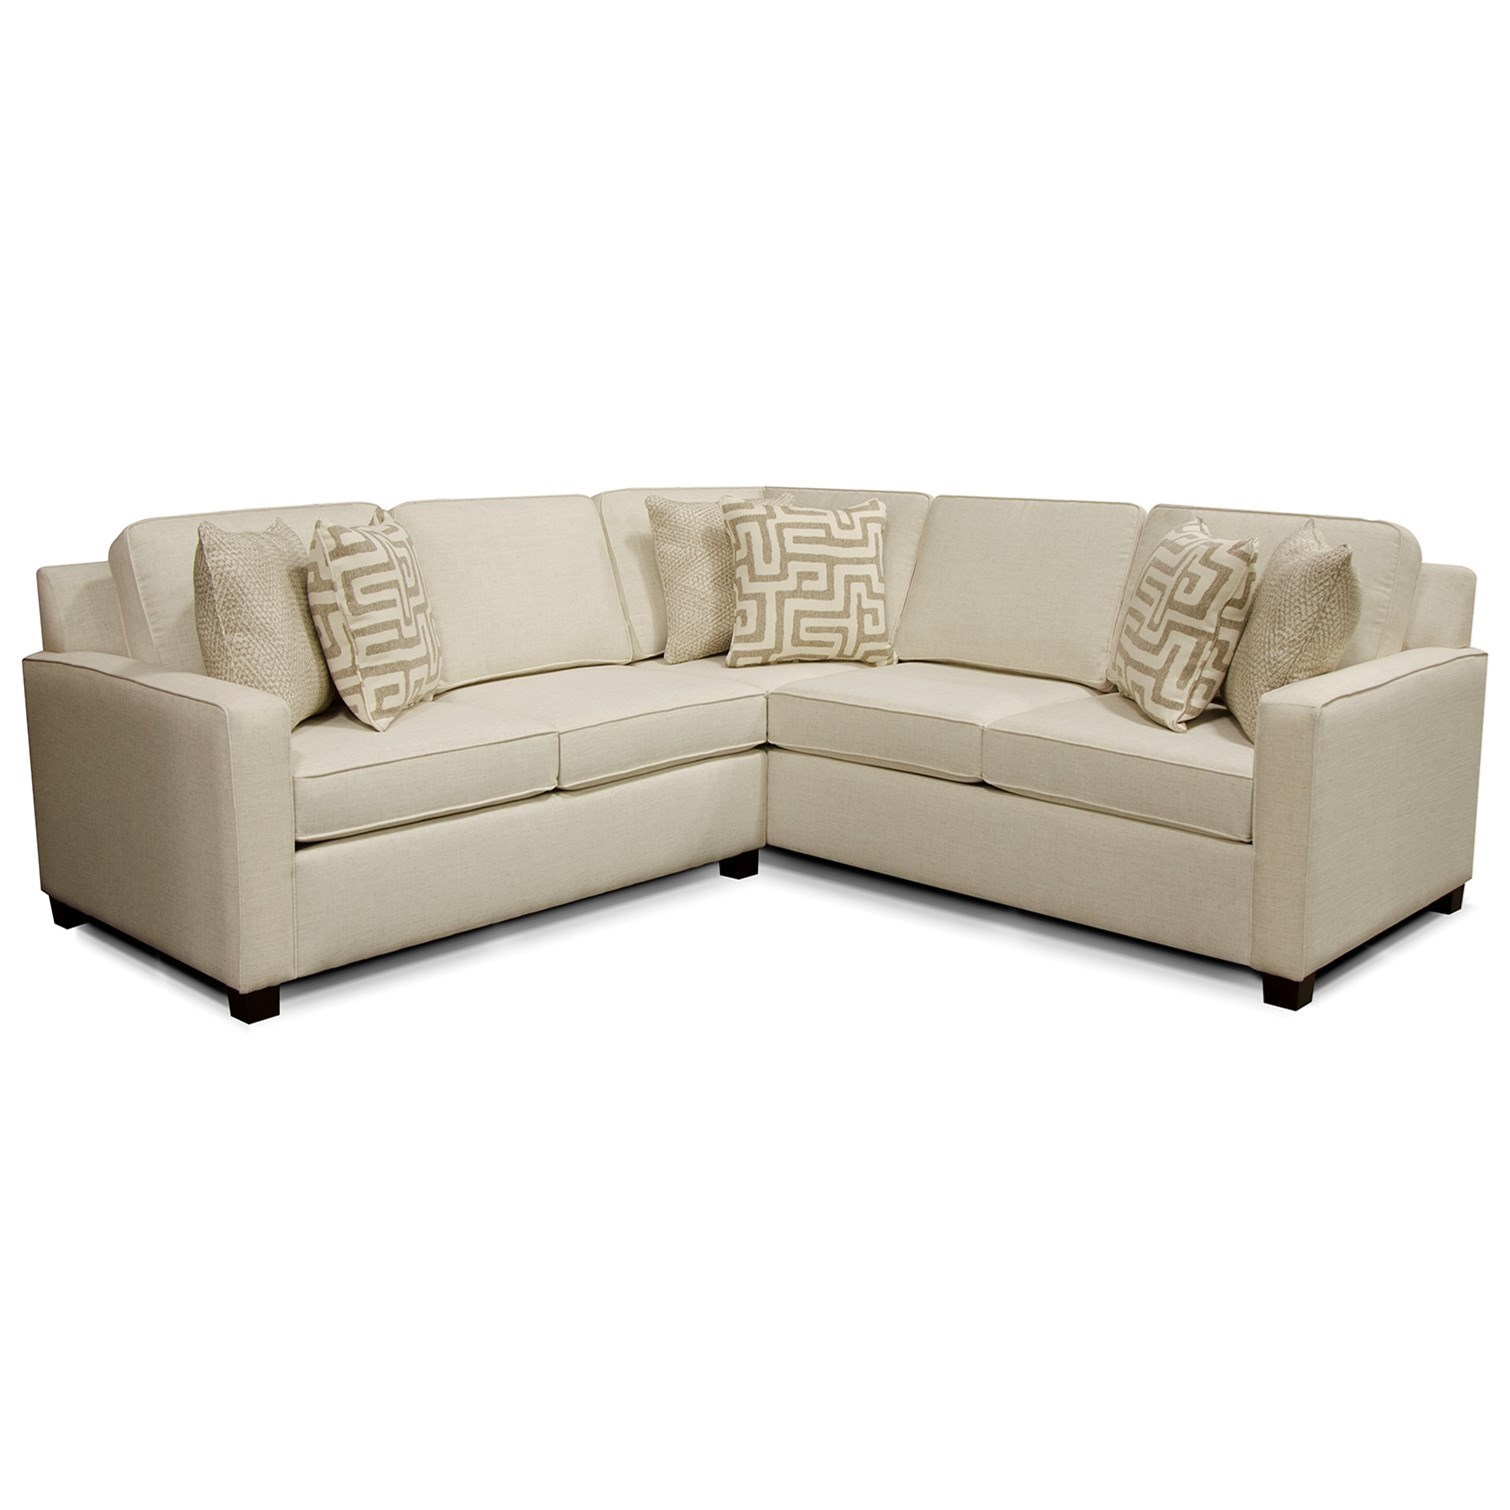 England Metromix River West Sectional Sofa With Four